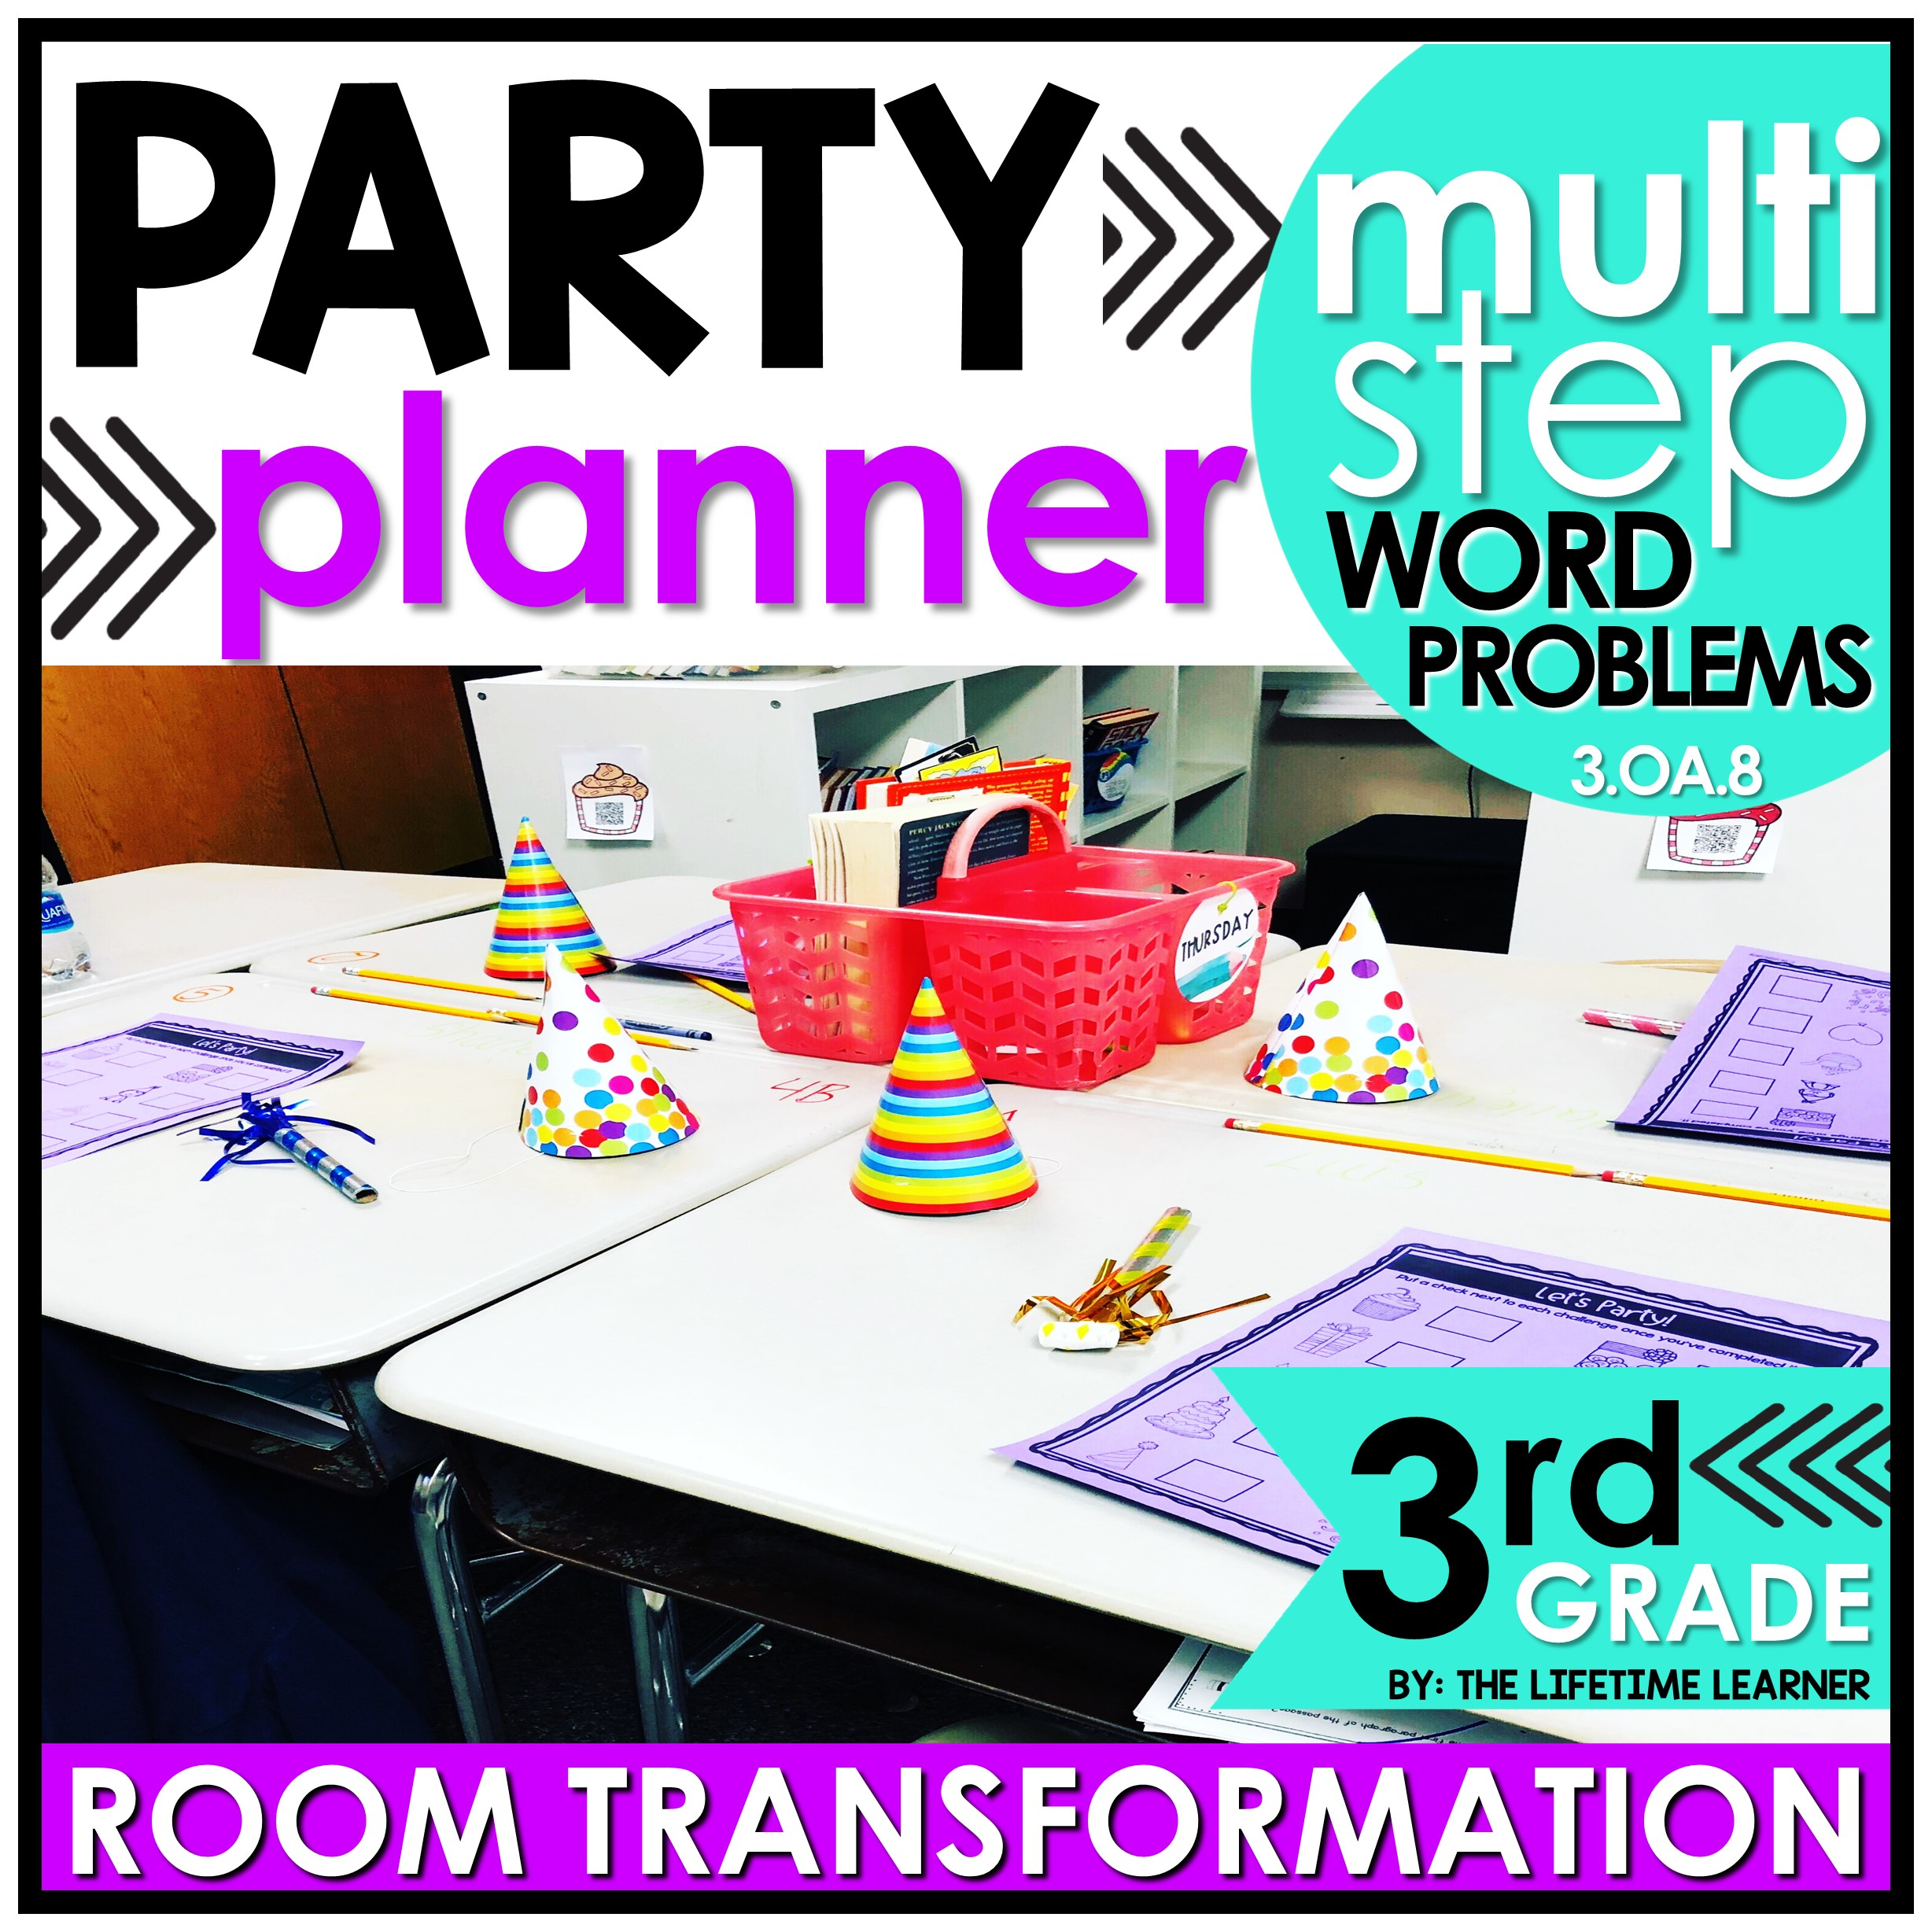 medium resolution of 3rd Grade Multi-Step Word Problems   Party Planner Classroom Transformation  - The Lifetime Learner